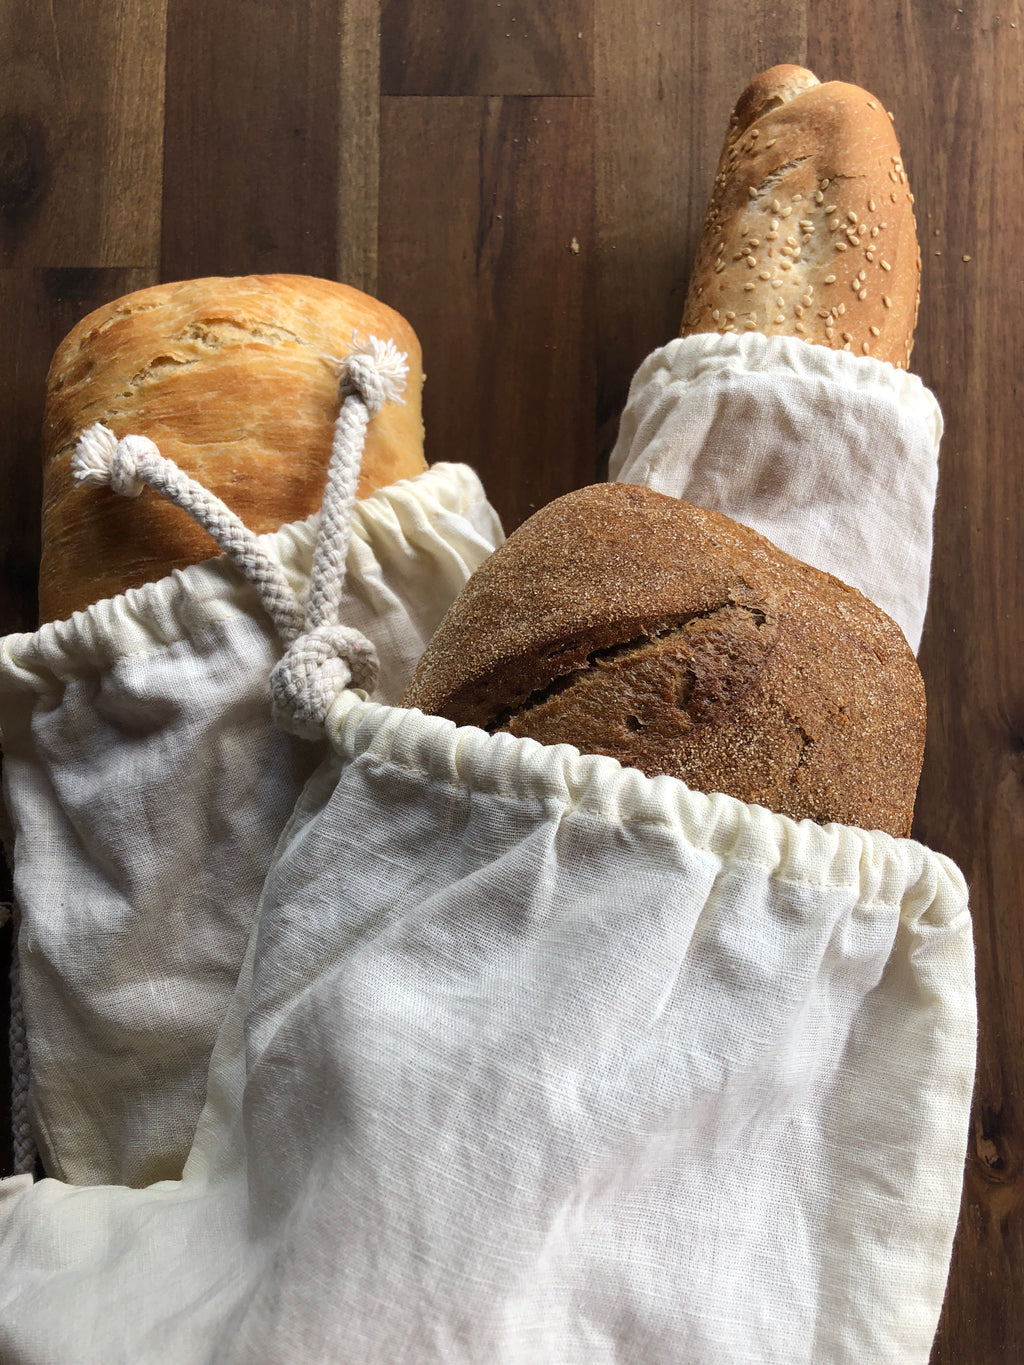 Linen  baguette bread bag